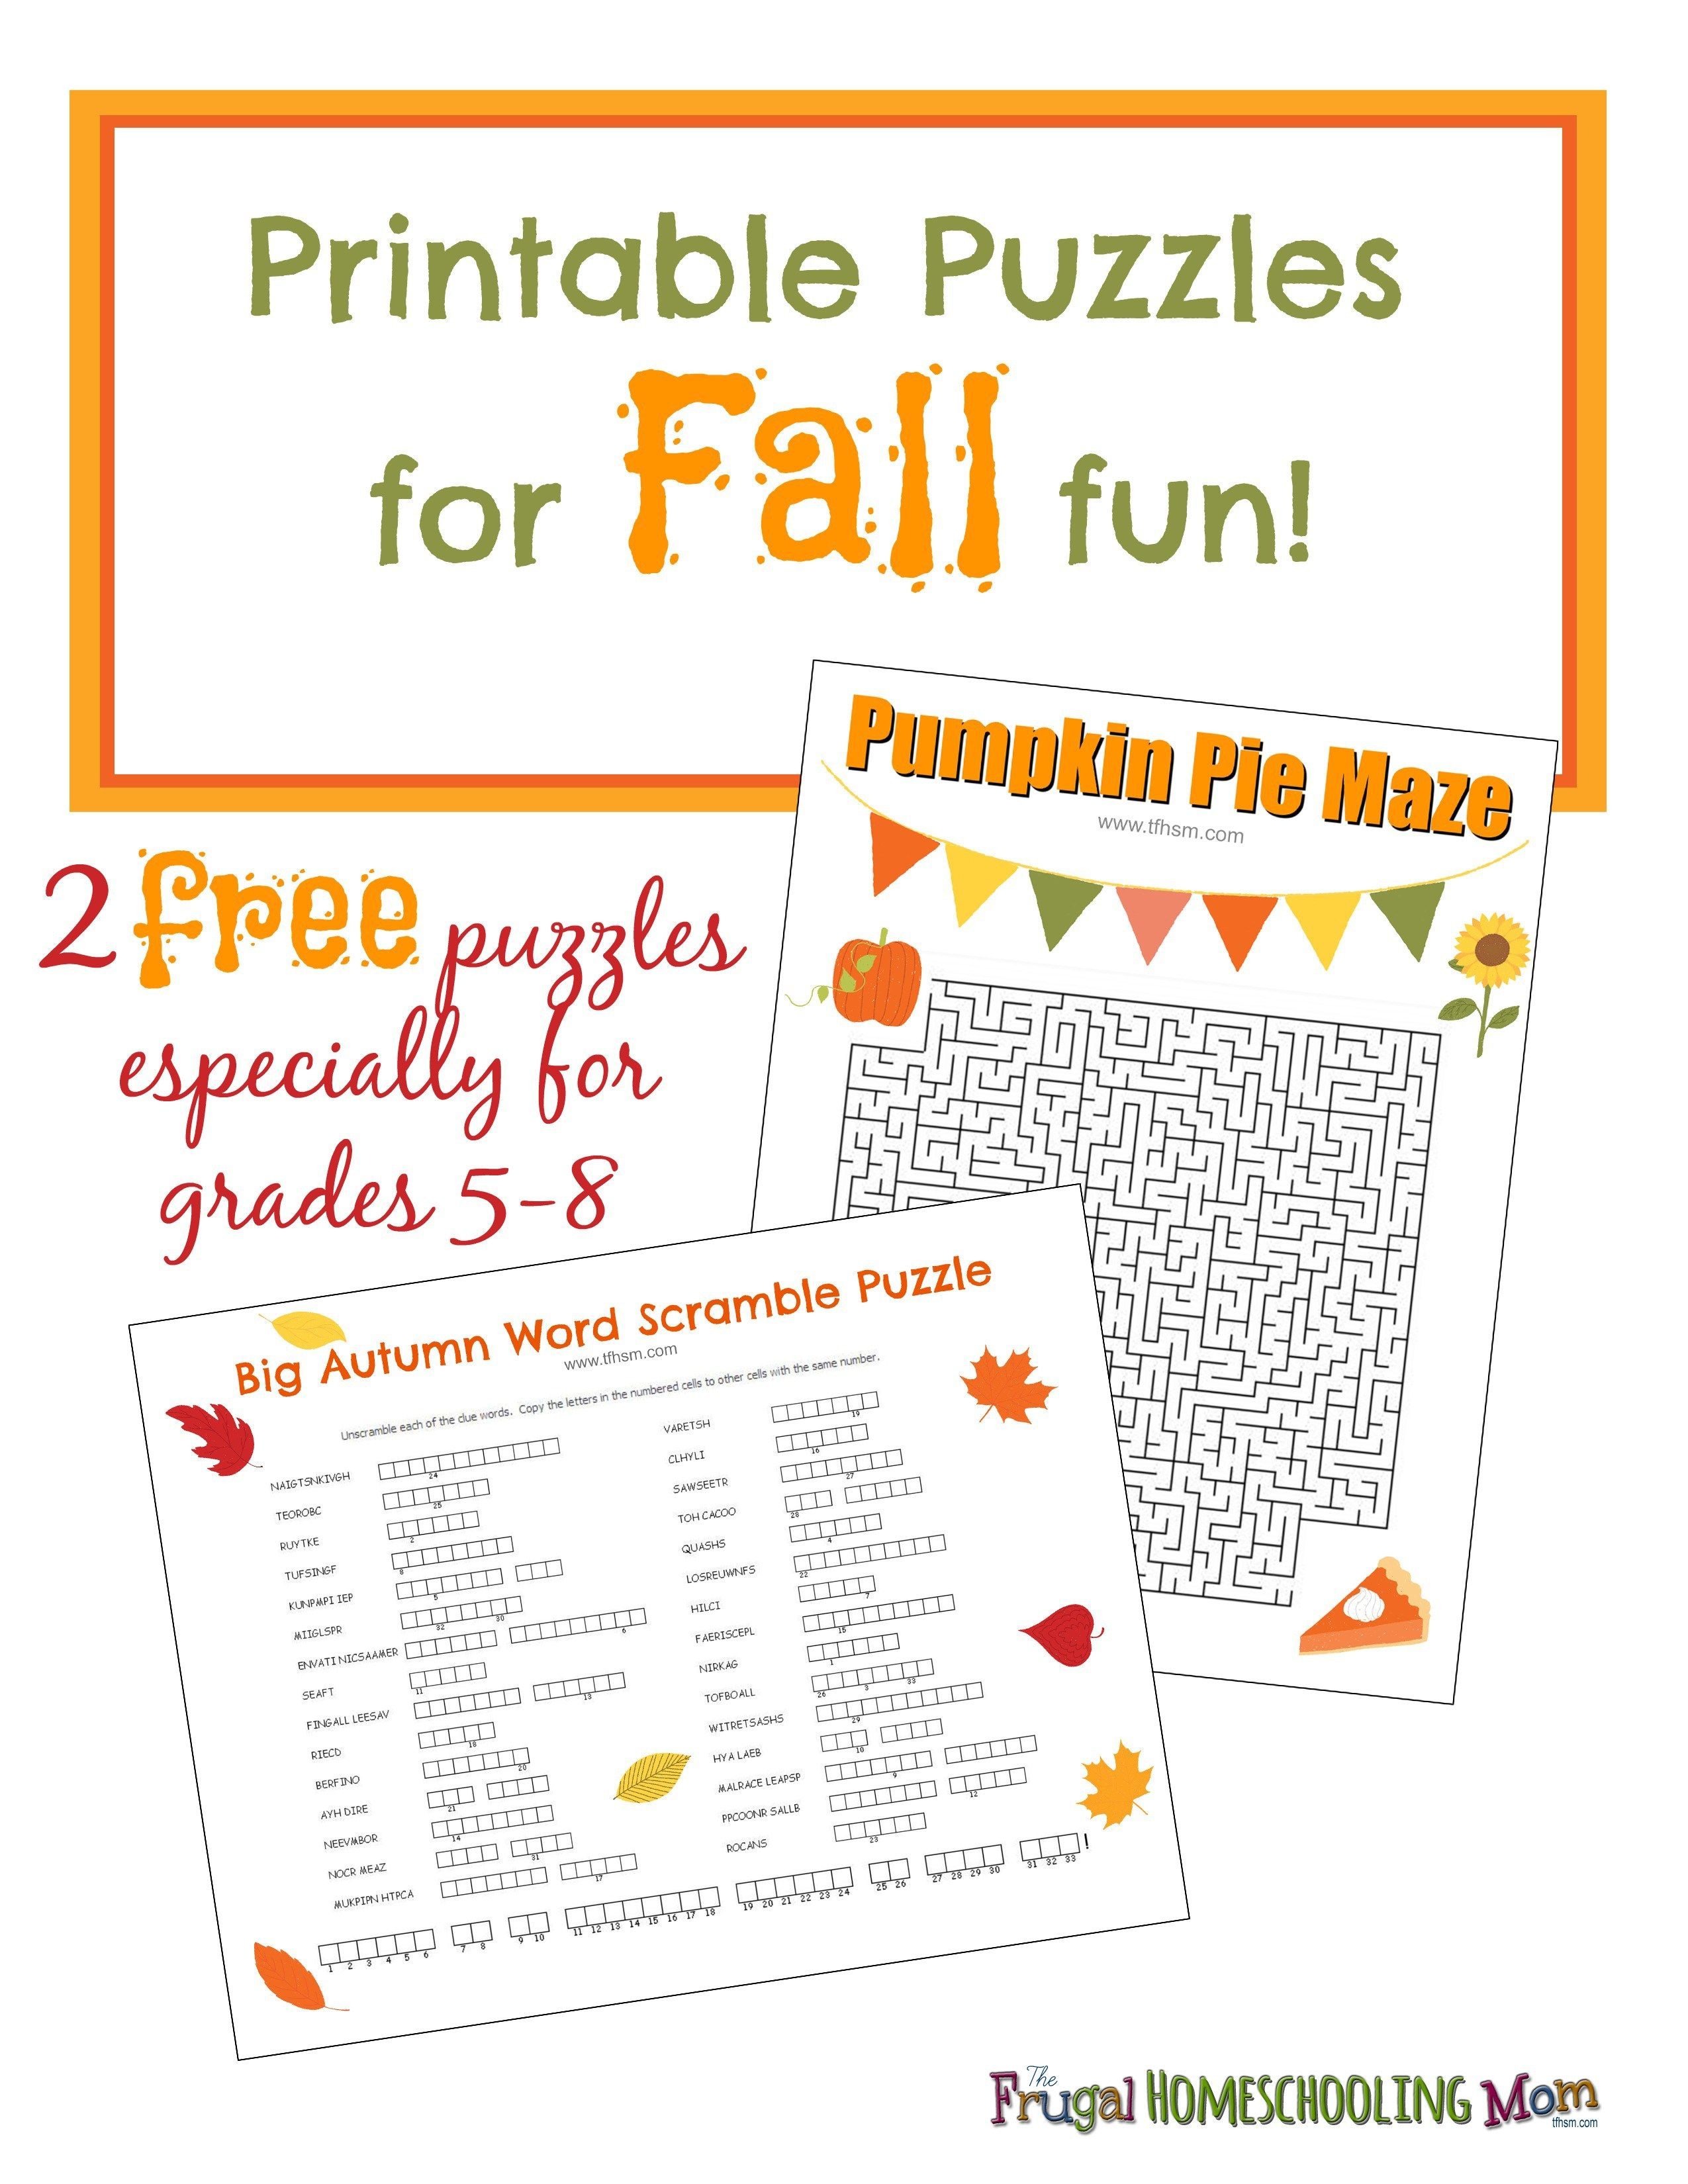 Free Fall Printable Puzzles | Ultimate Homeschool Board | Middle - Printable Halloween Puzzles For Middle School